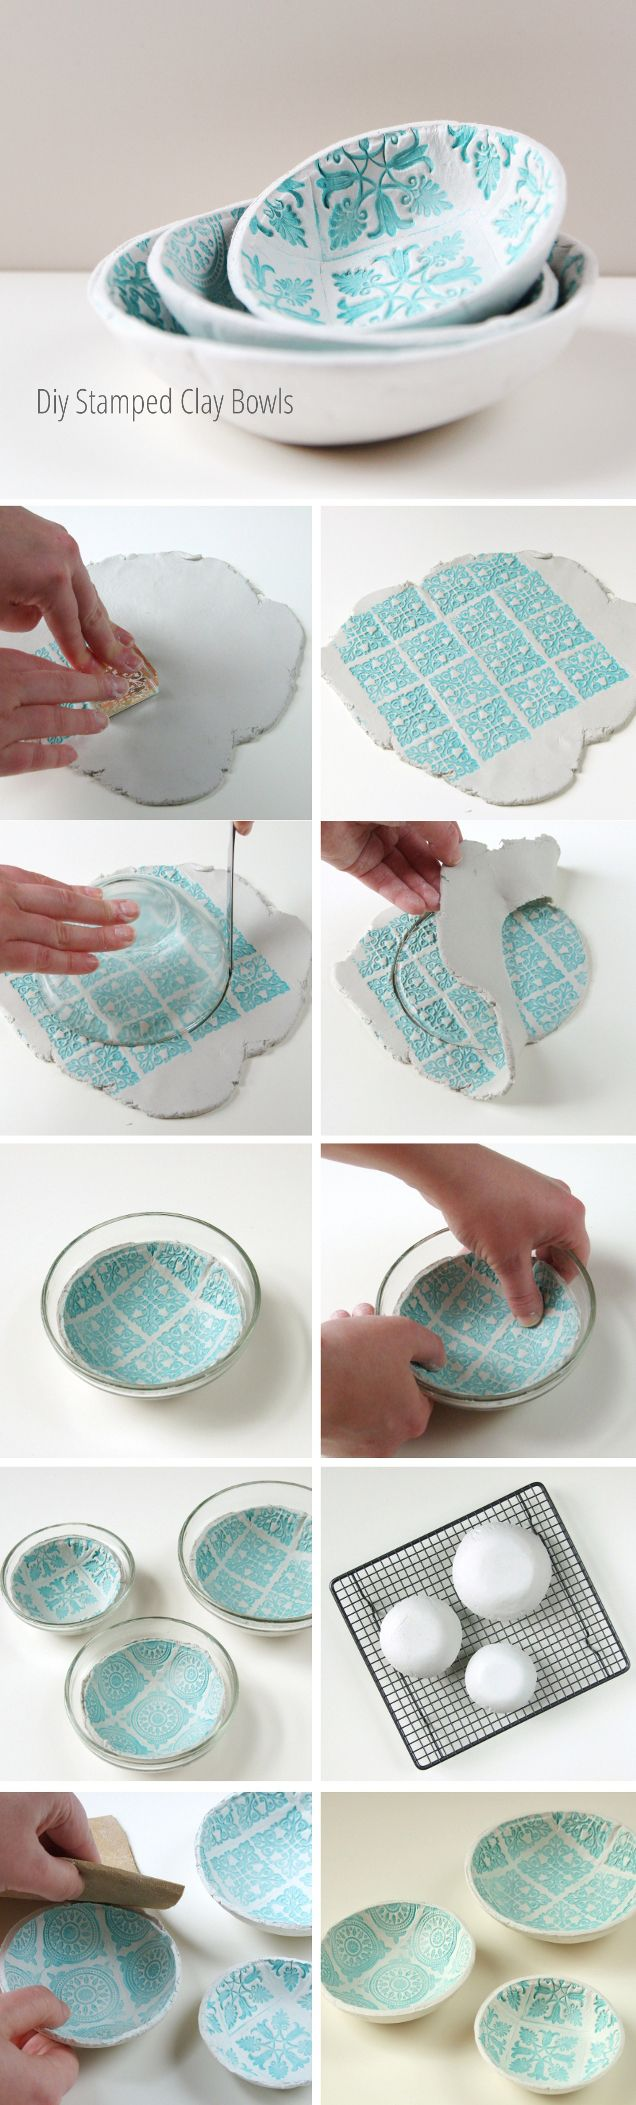 diy stamped clay bowls. so cool!